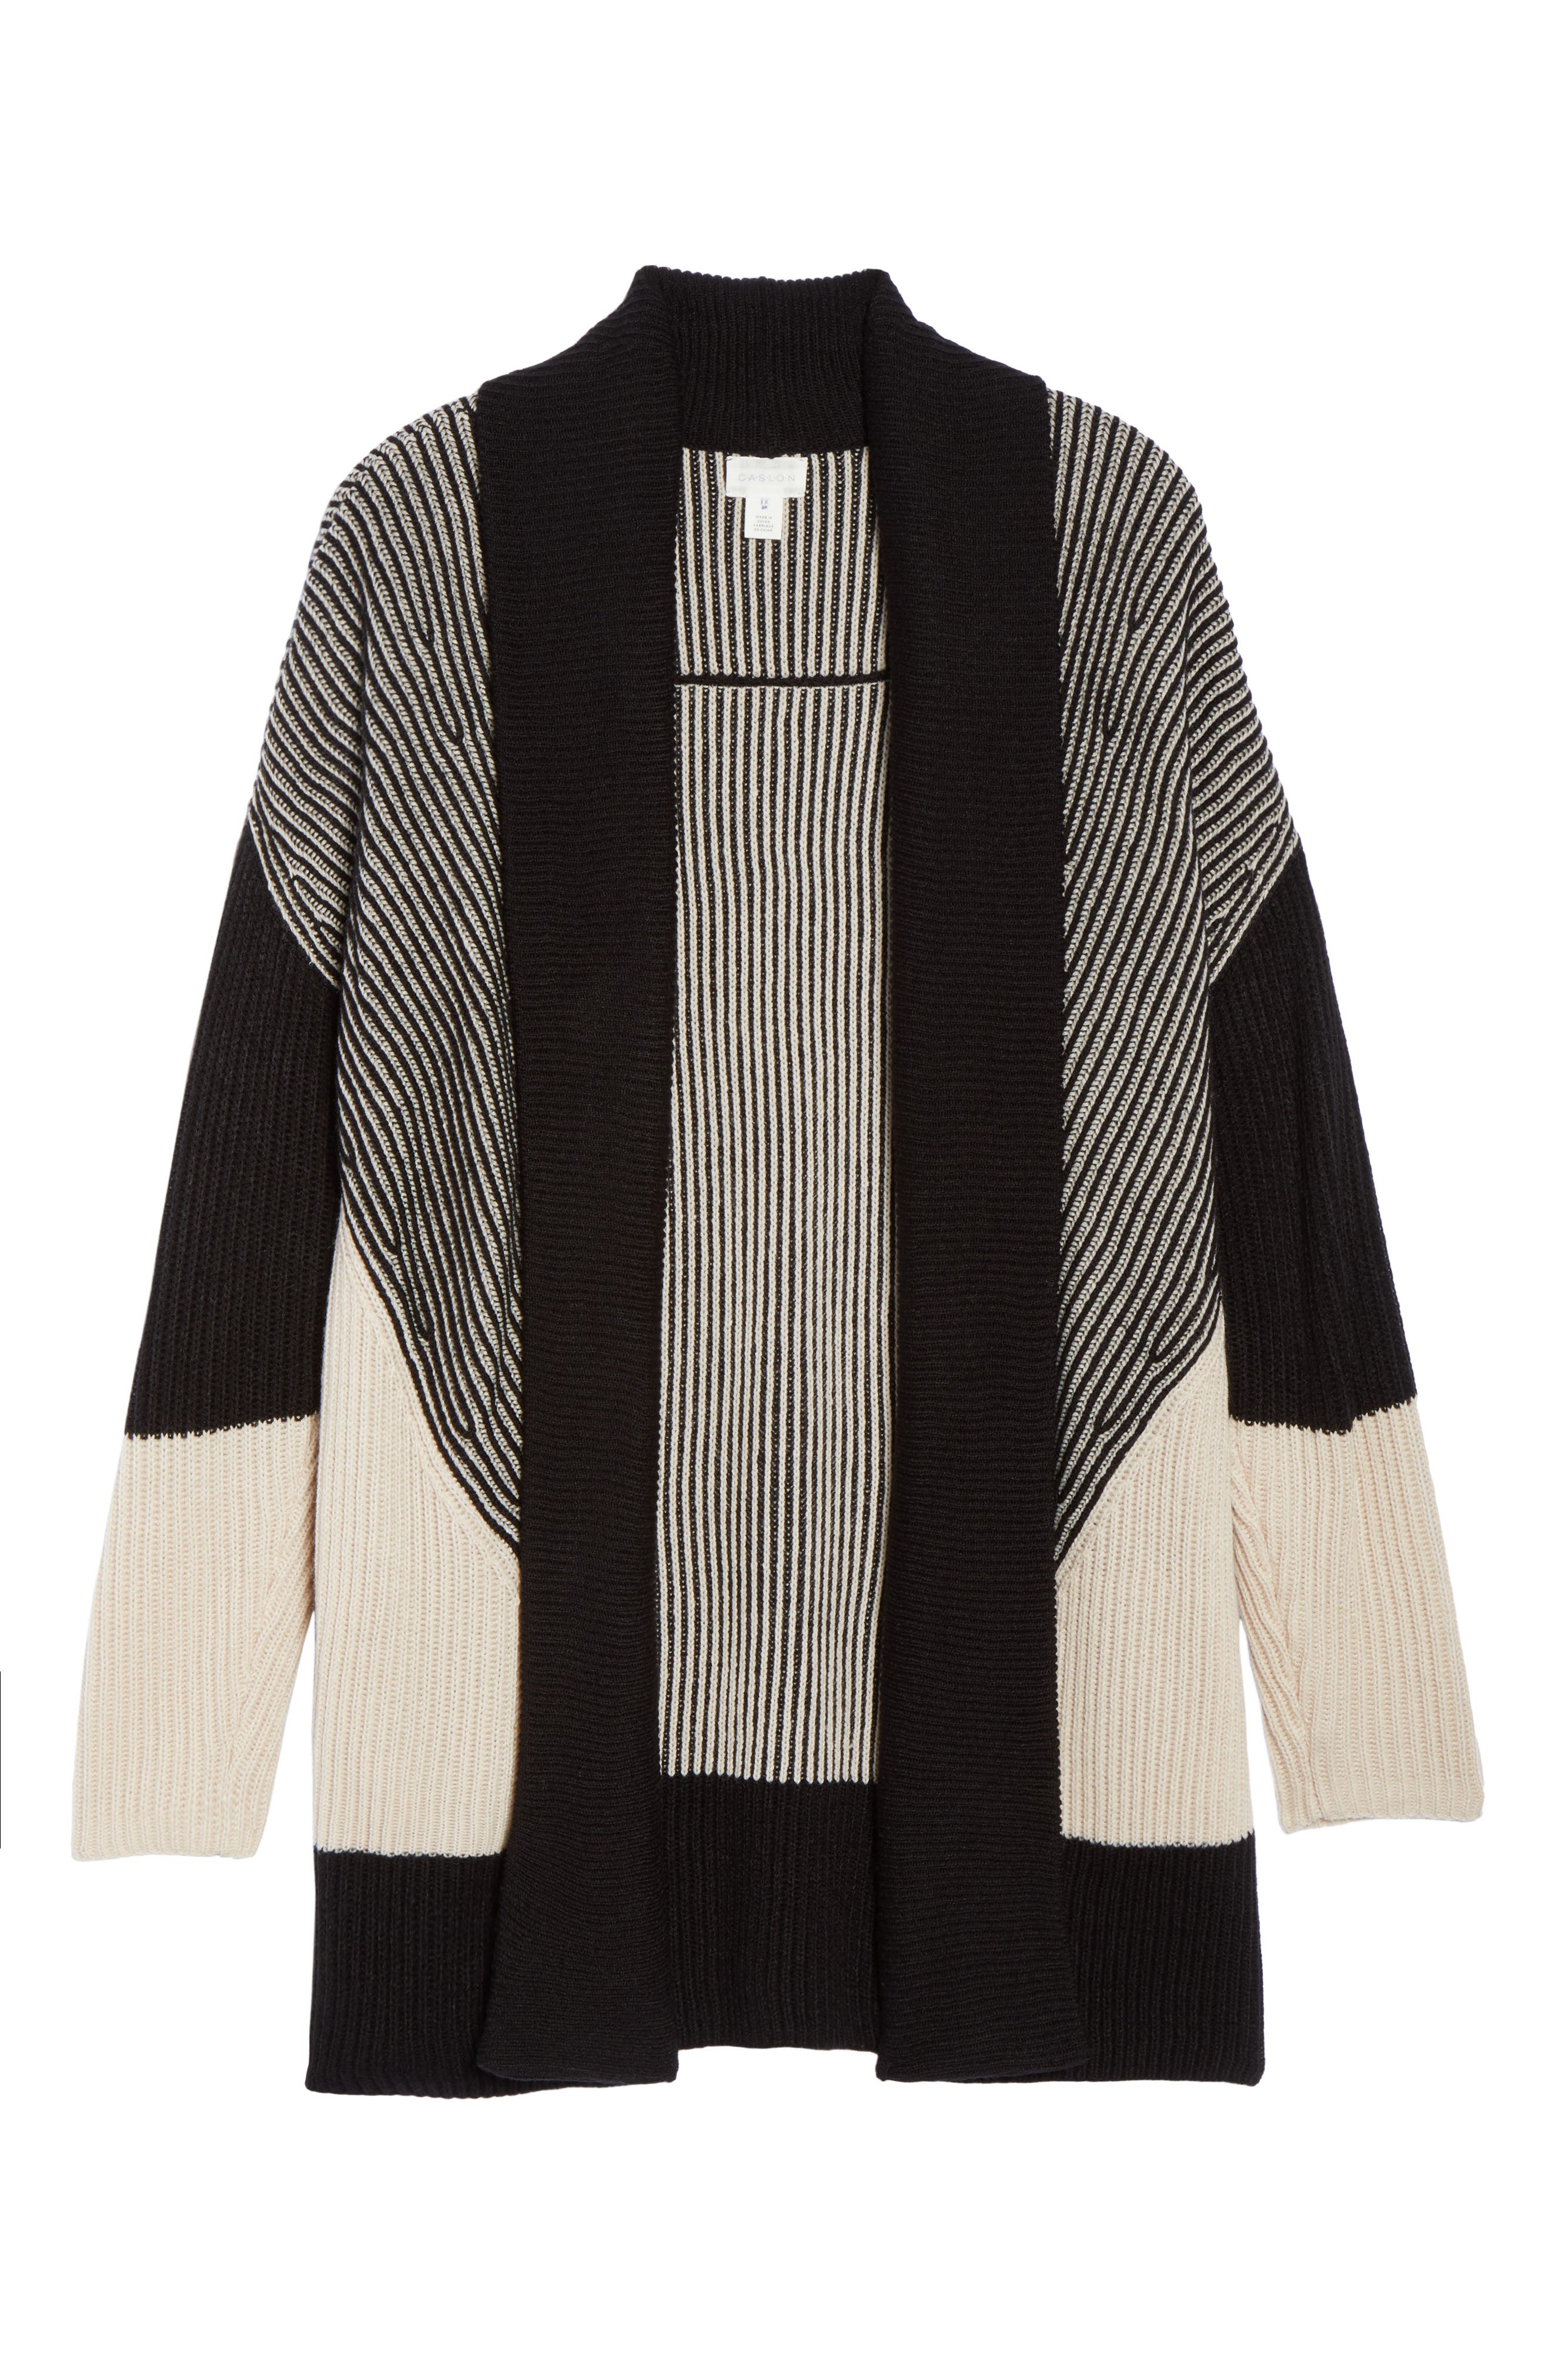 Colorblock Ribbed Cardigan,                             Alternate thumbnail 6, color,                             Beige- Black Pattern